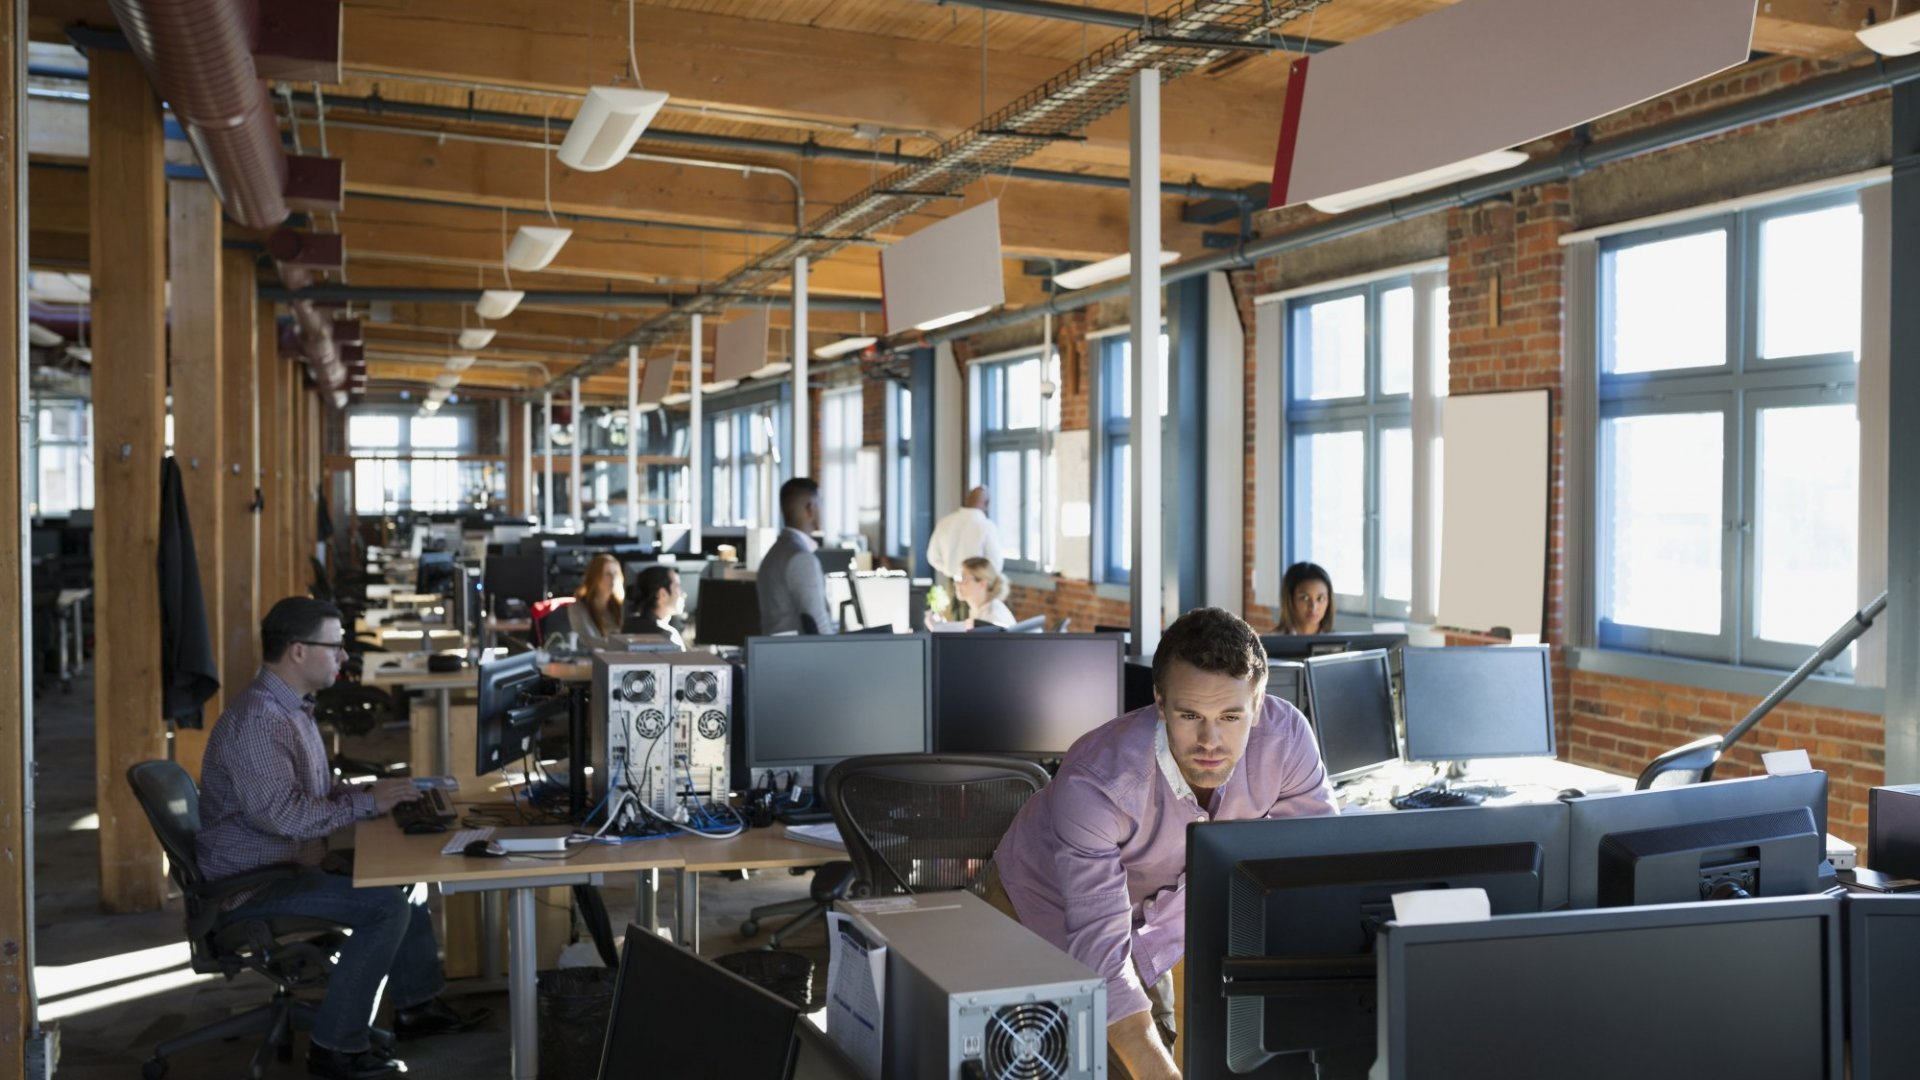 New Harvard Study: Your Open-Plan Office Is Making Your Team Less Collaborative